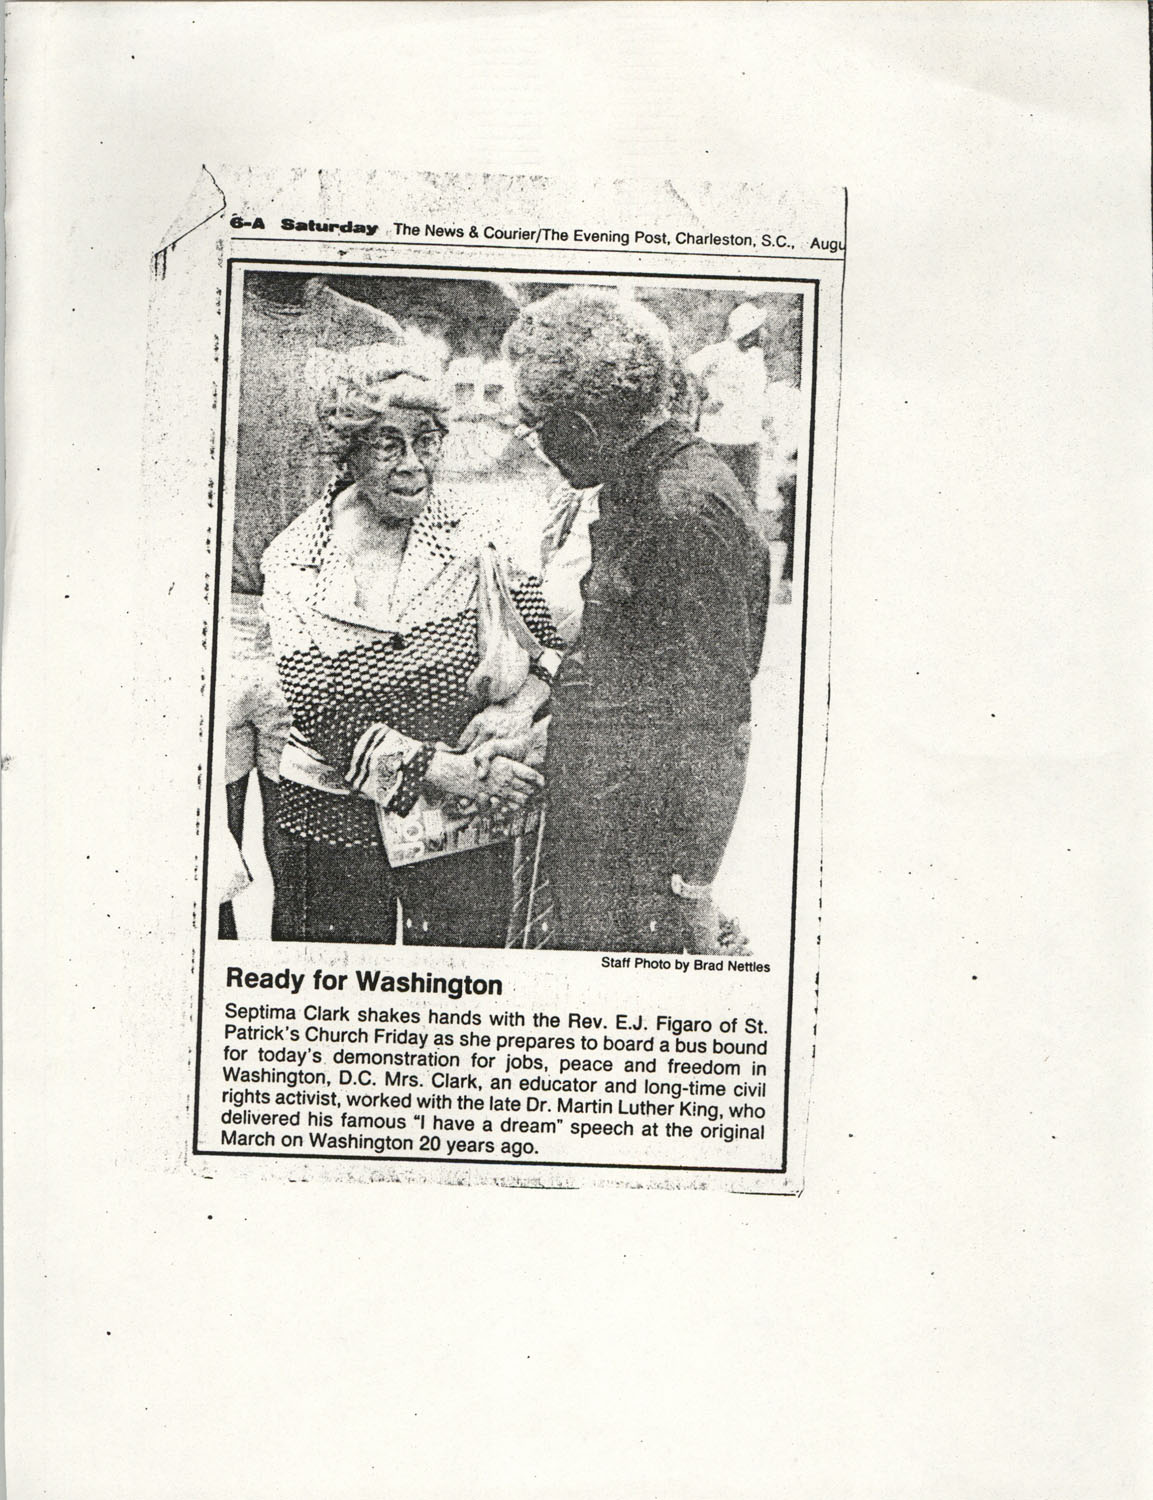 Newspaper Article, Washington D.C. Demonstration